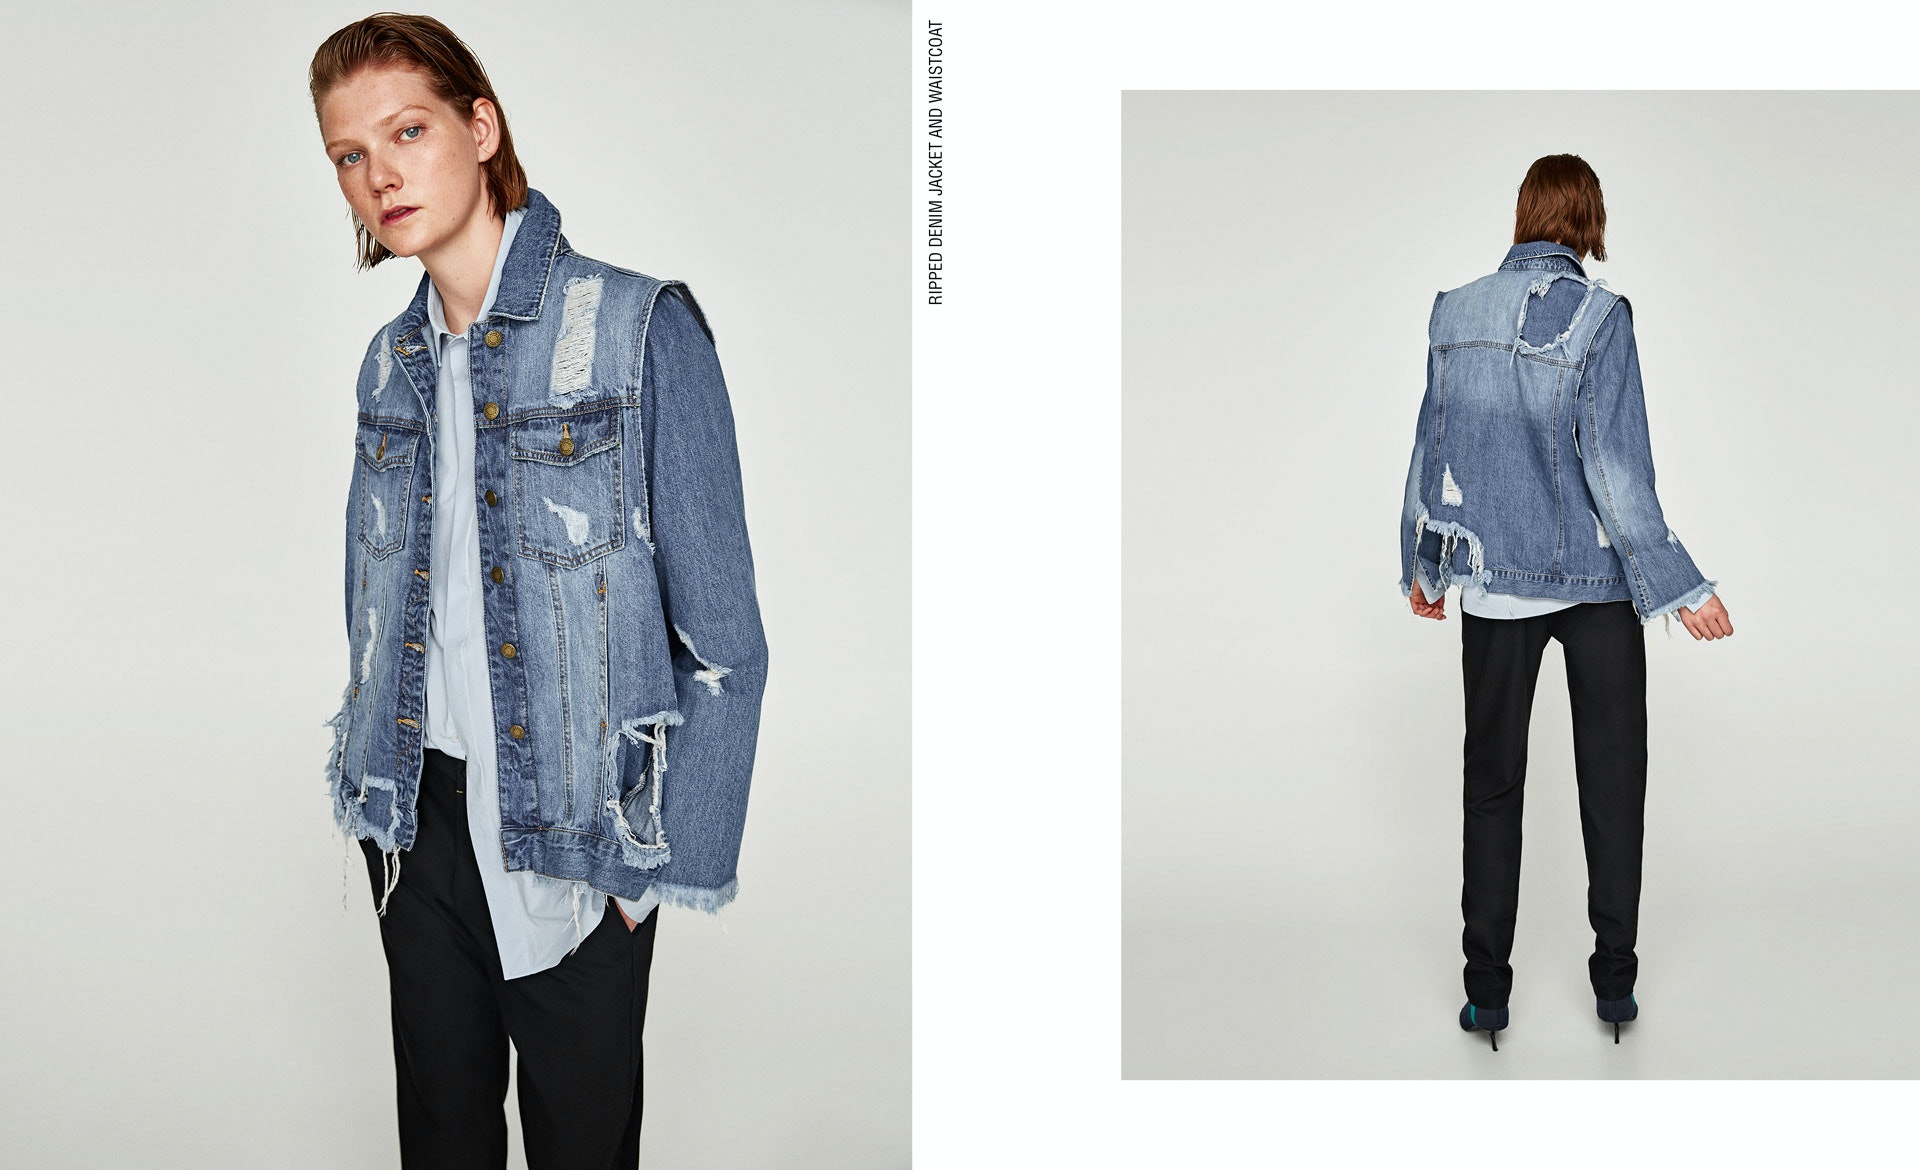 30 Oversized Denim Jackets That Make The Perfect Addition To Any